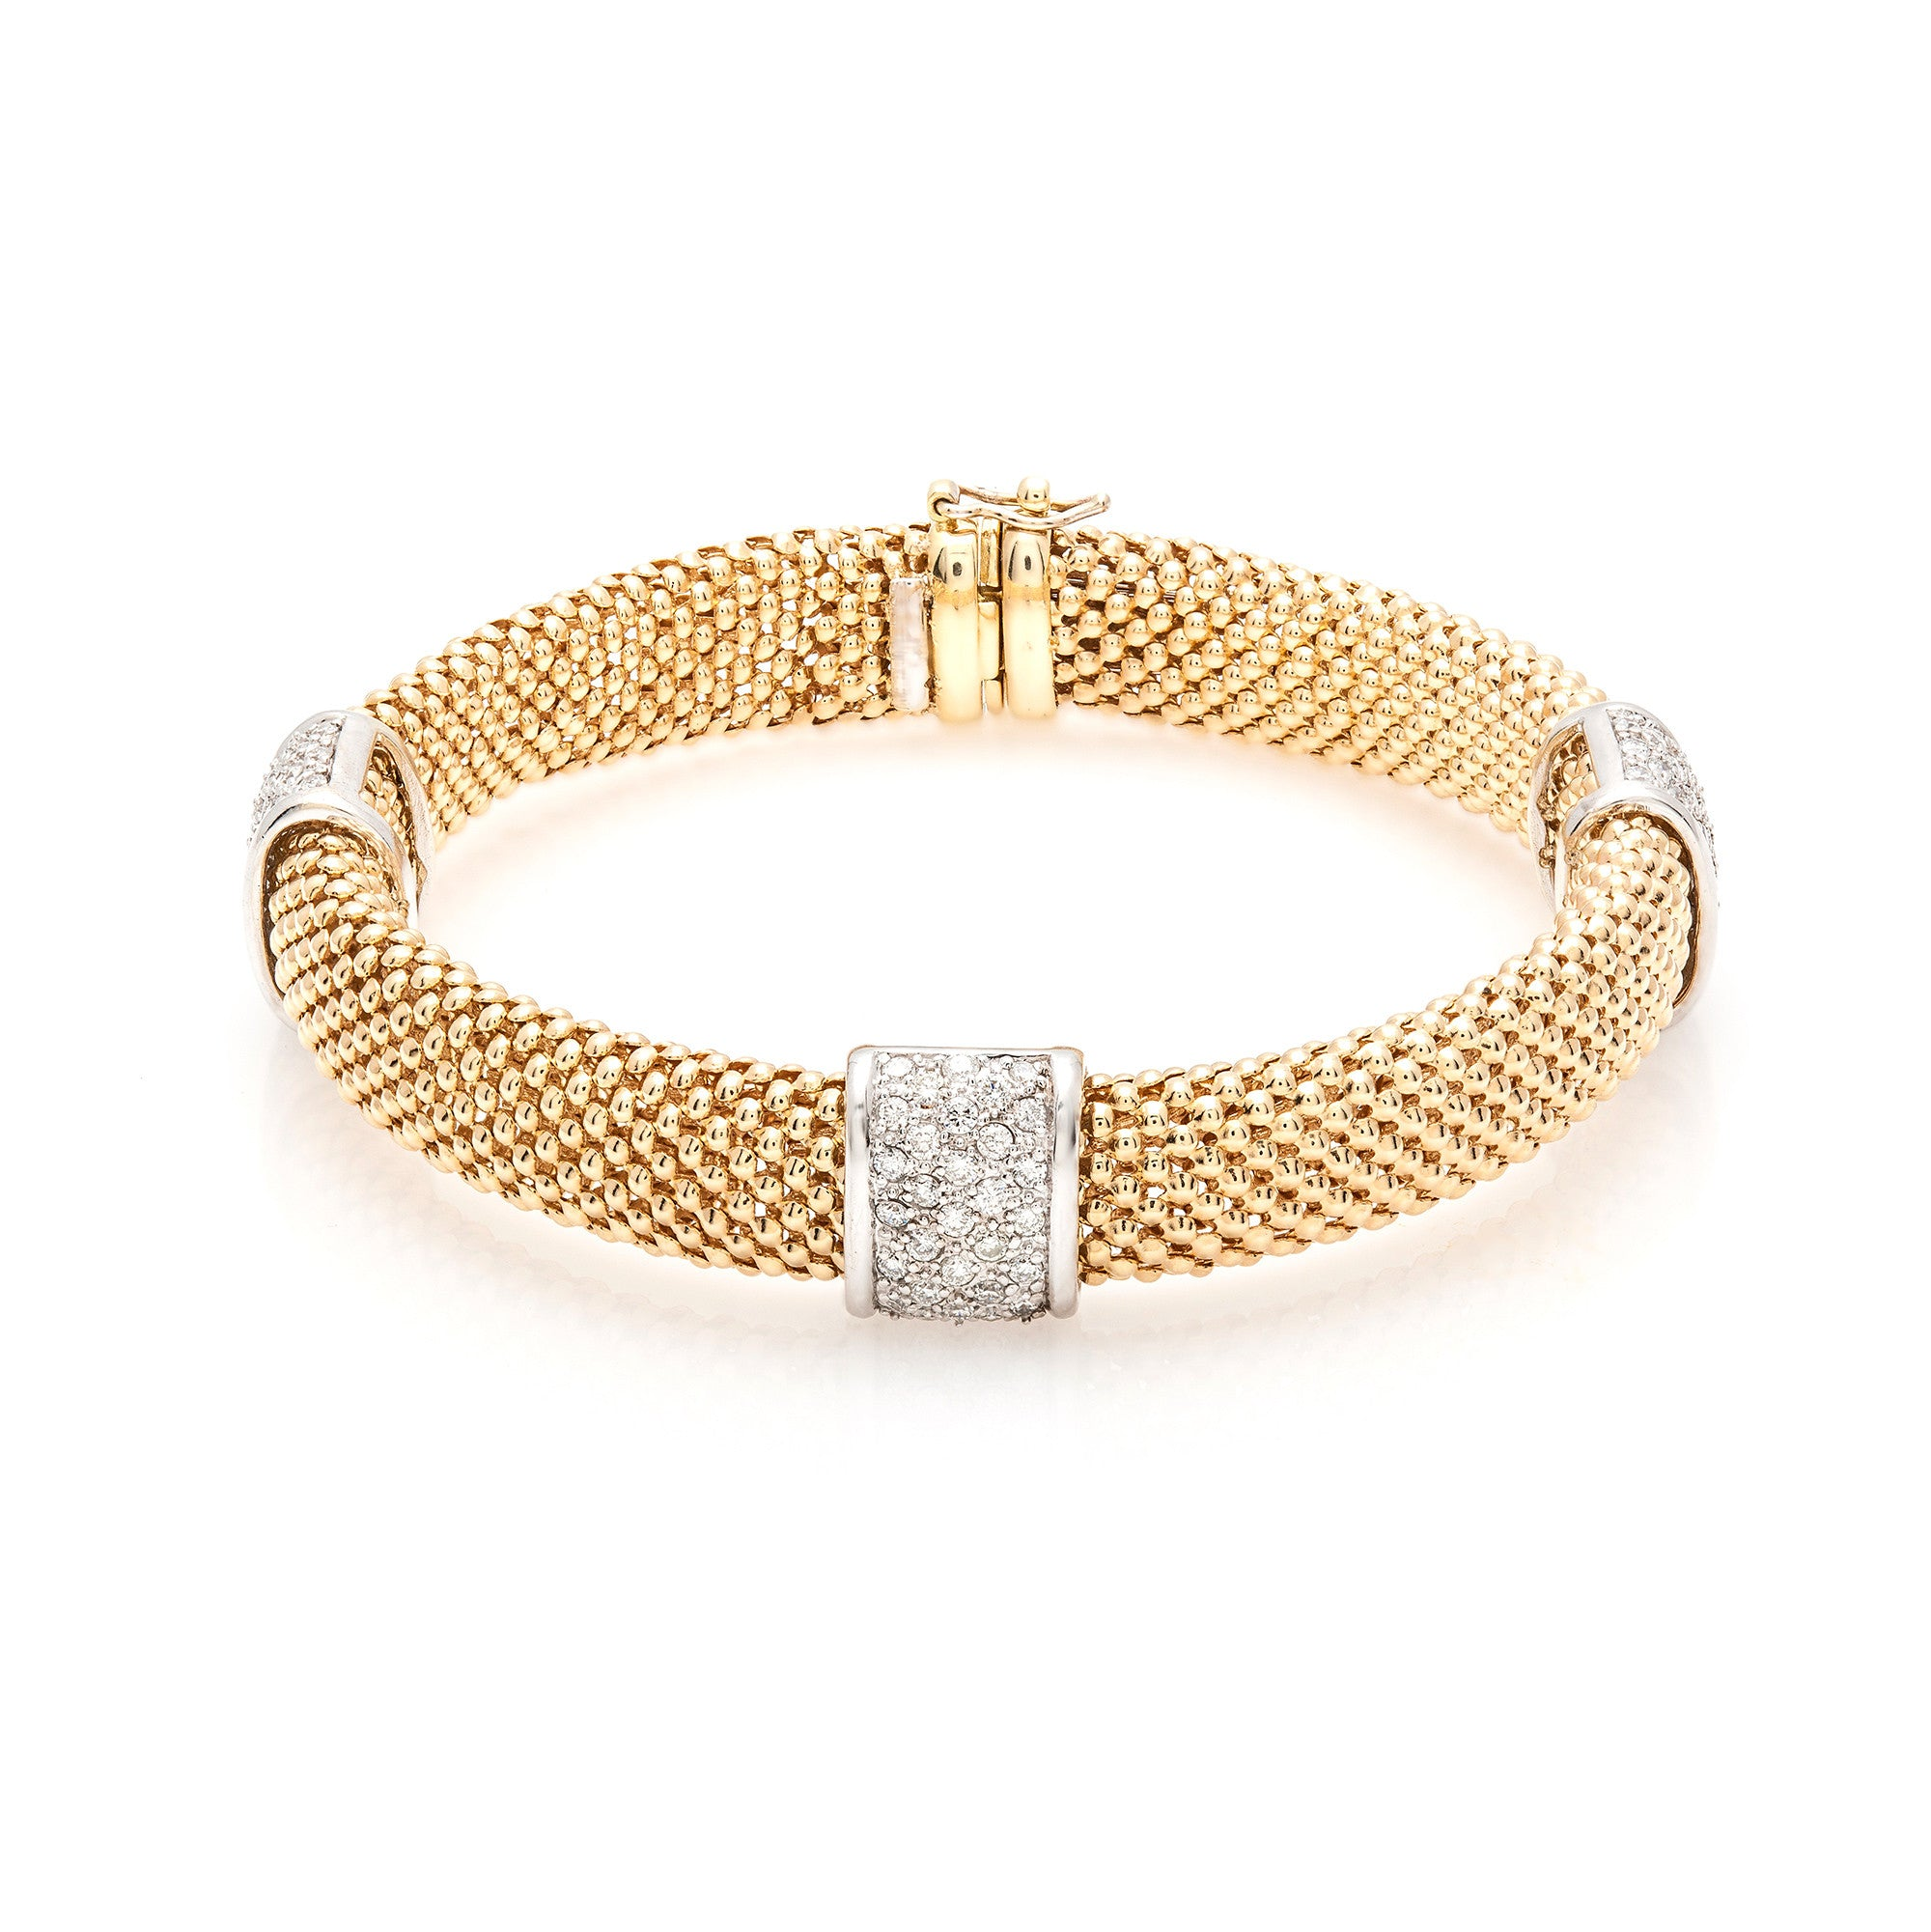 bracelet diamond pave bangle r jewelers nuha gold rockstud bangles products